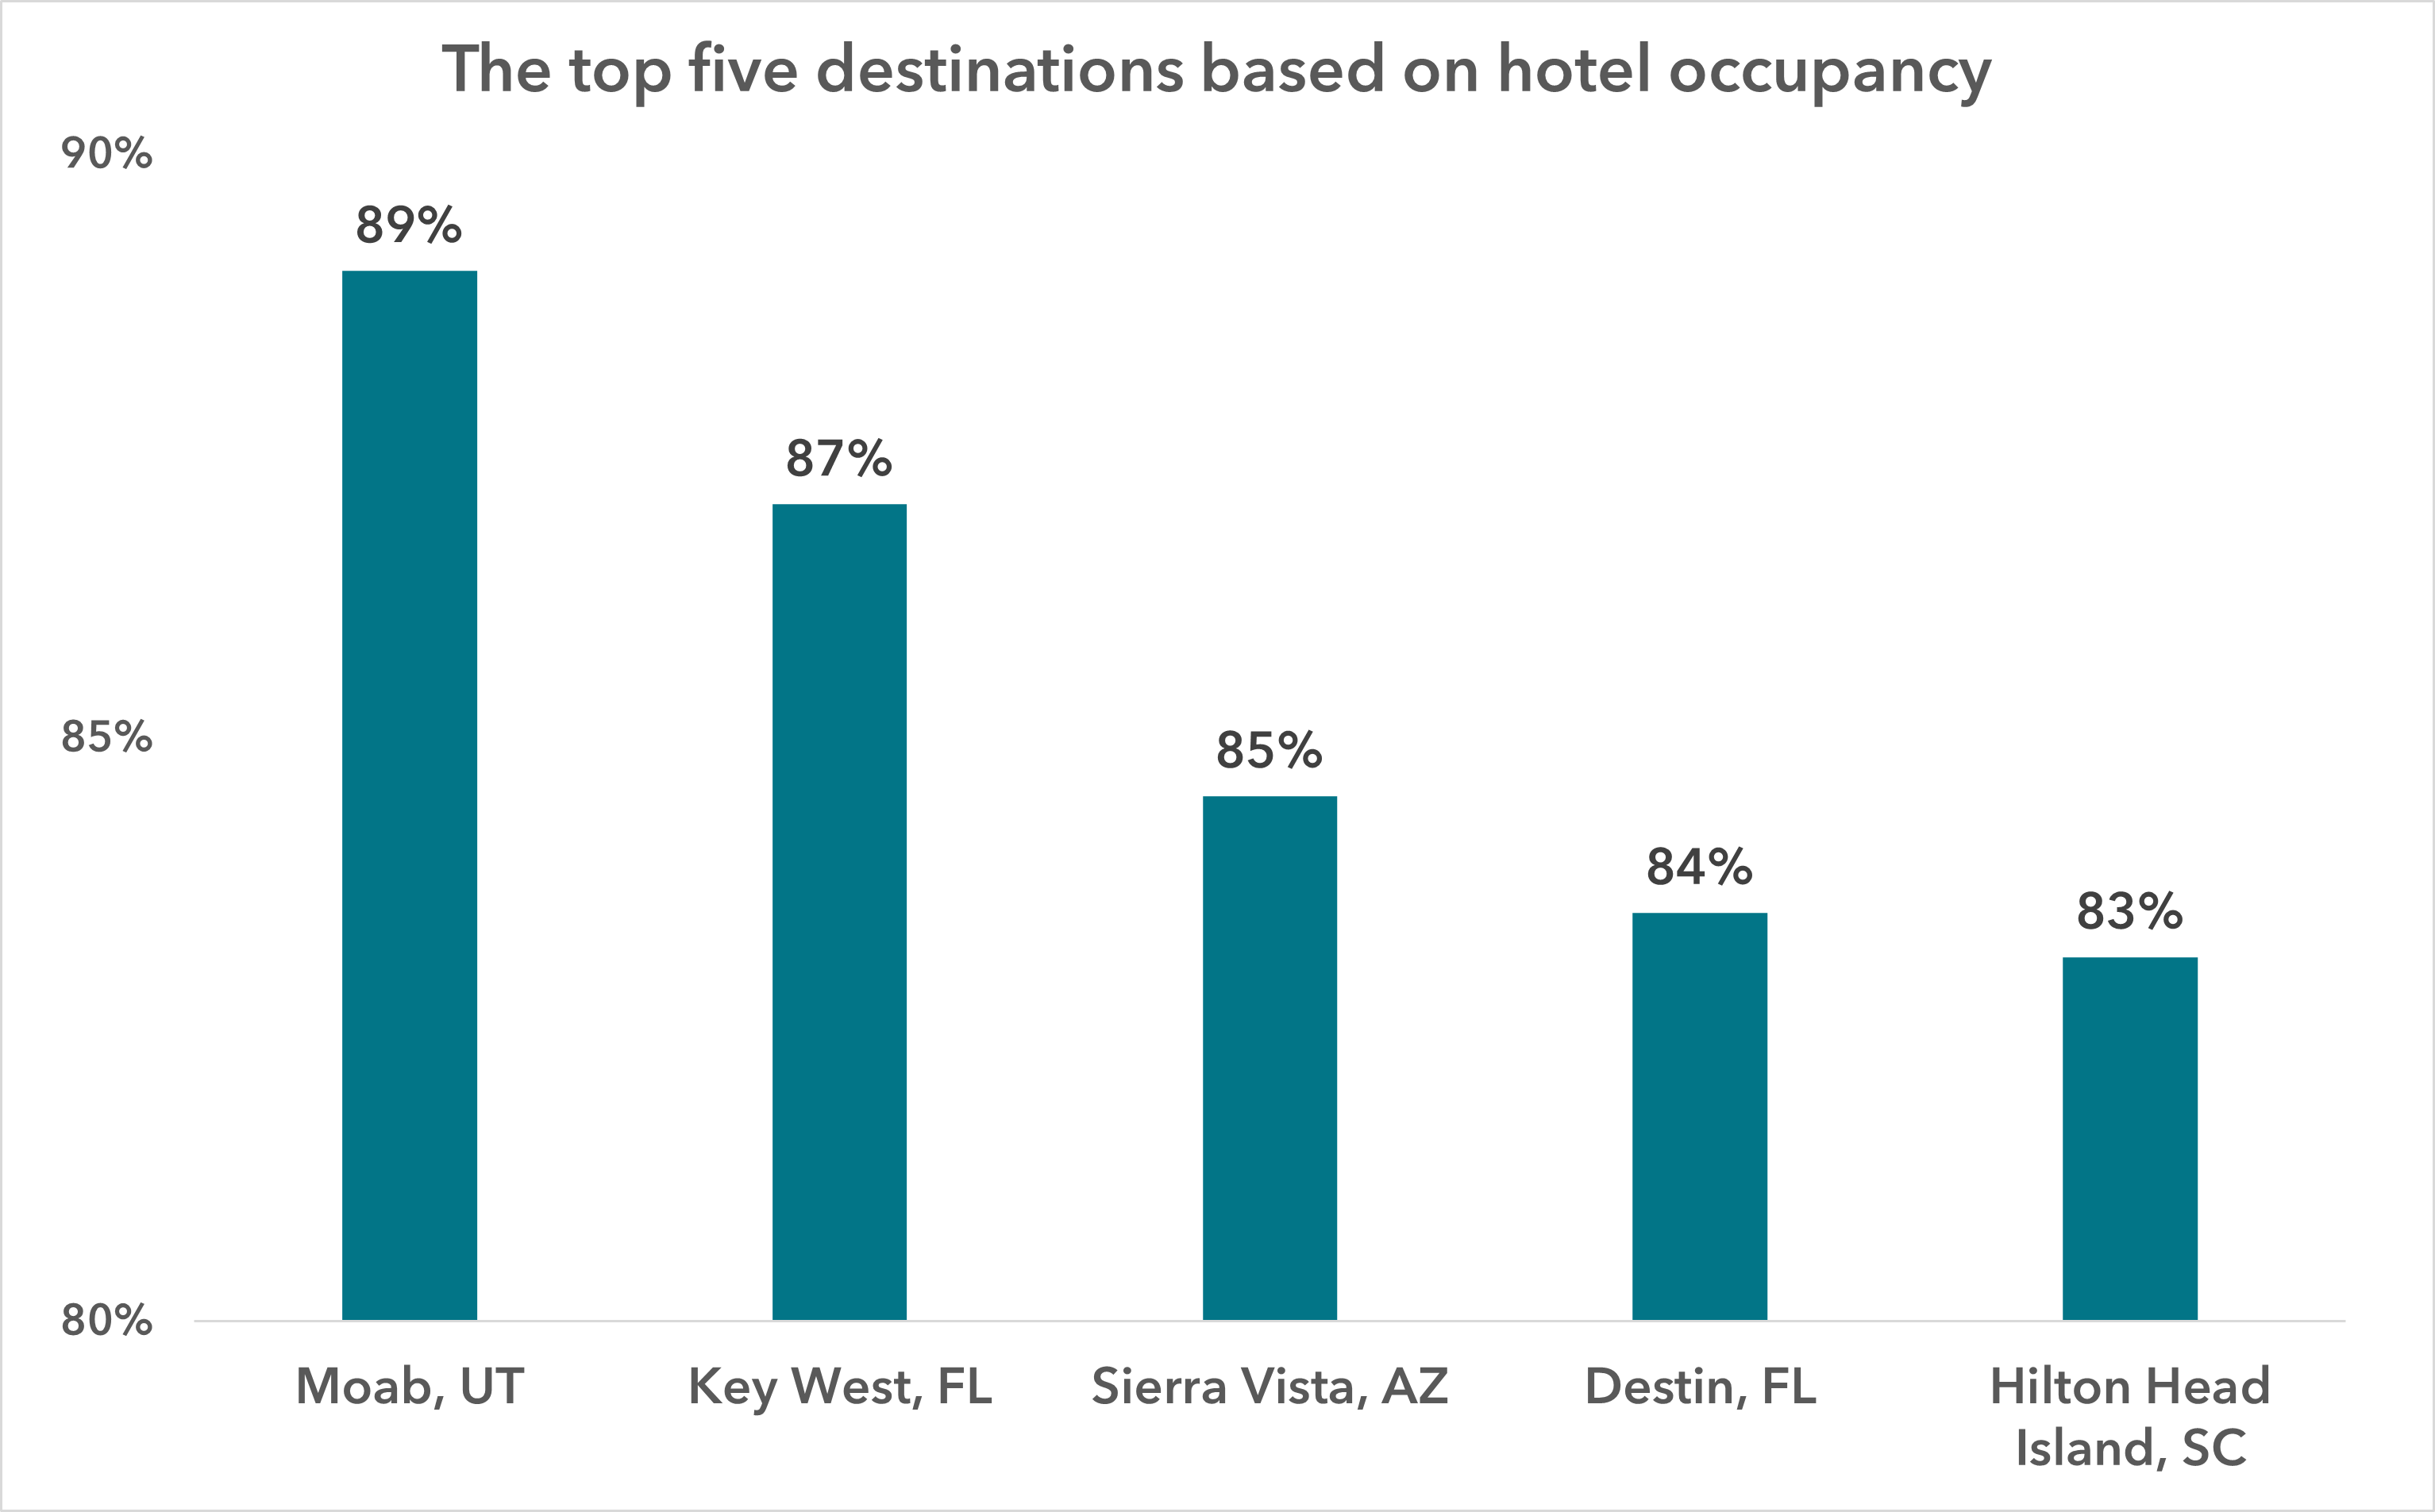 The top five destinations based on hotel occupancy